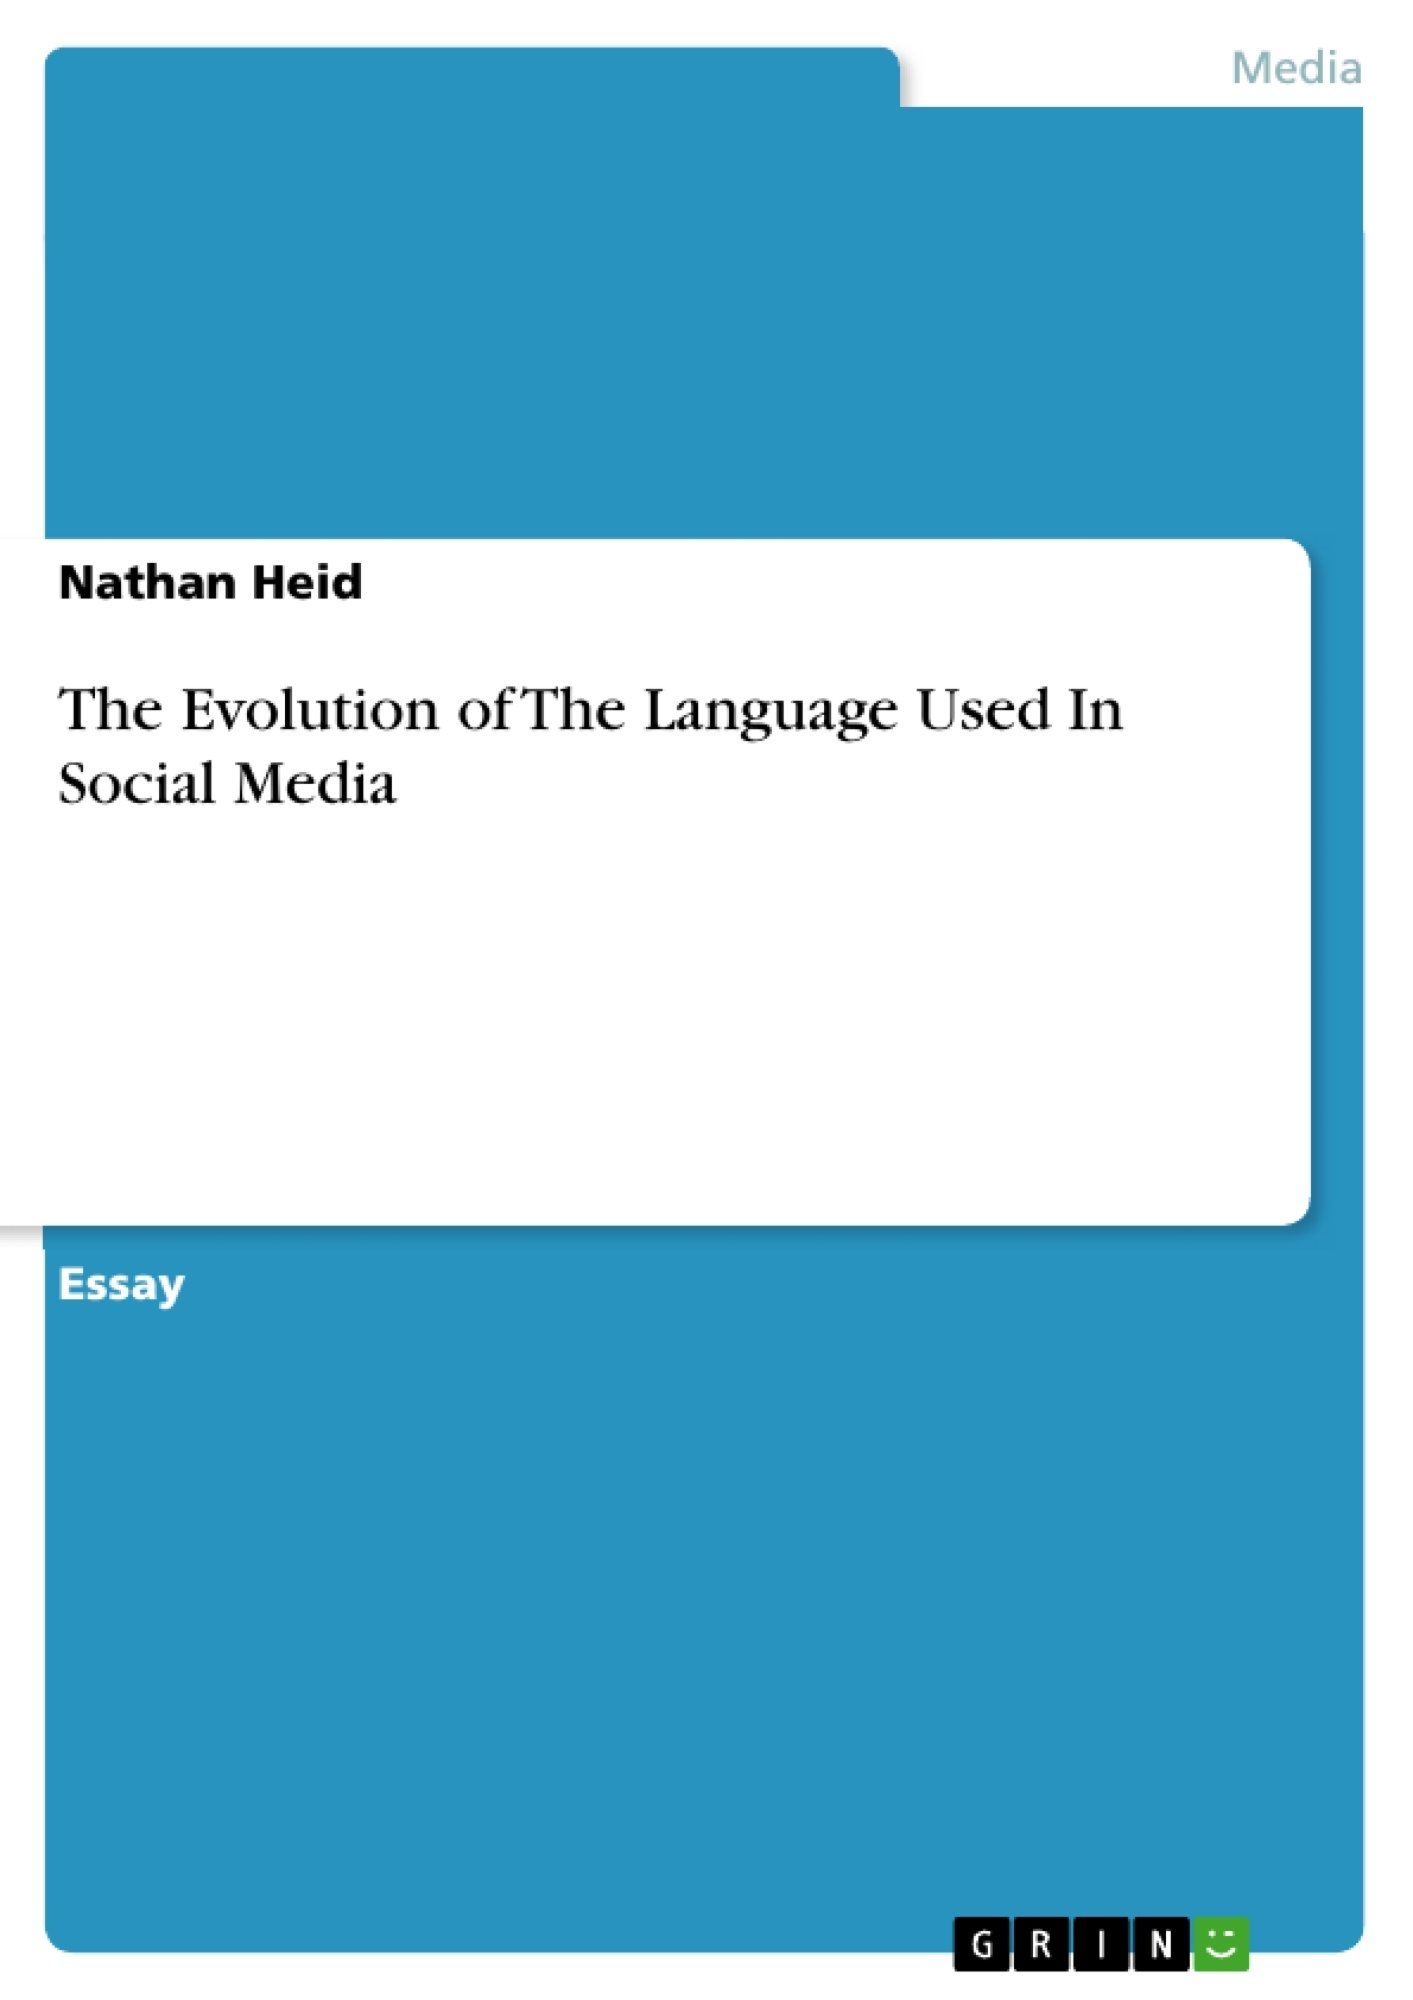 Title: The Evolution of The Language Used In Social Media